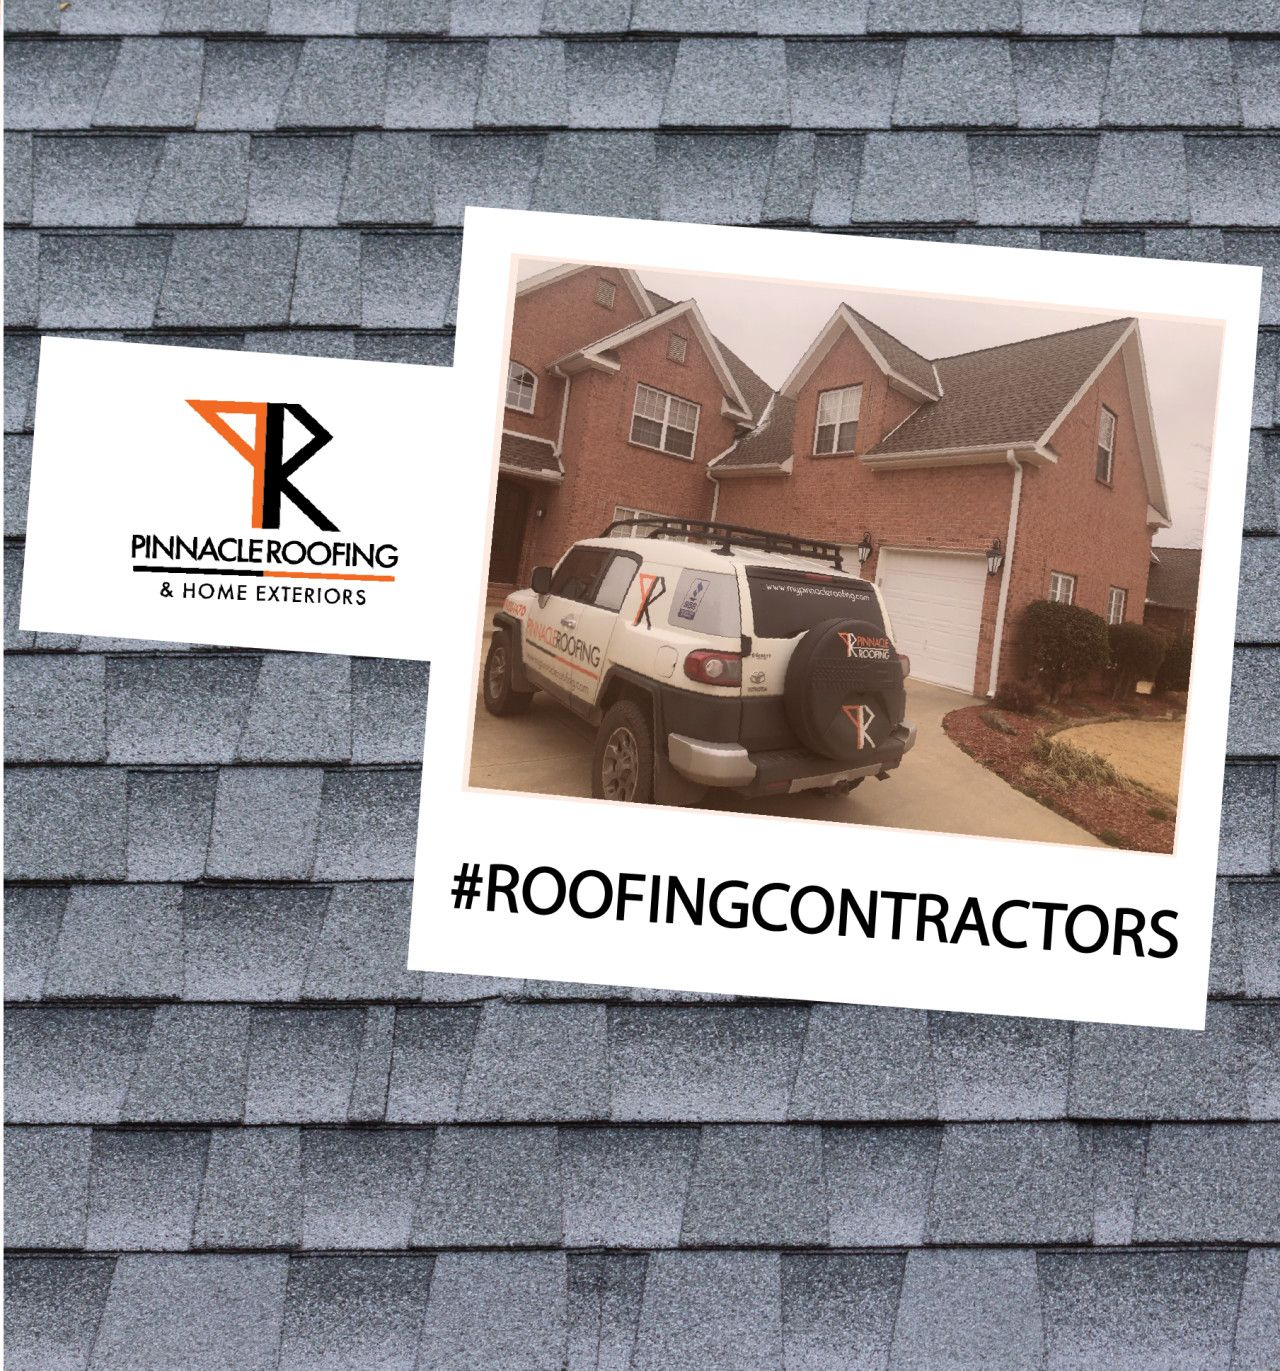 Have You Spotted One Of Our Fj Cruisers At Your Neighbor S House Recently Join The Club And Have Us Inspect You Roof Repair Roofing Contractors House Exterior